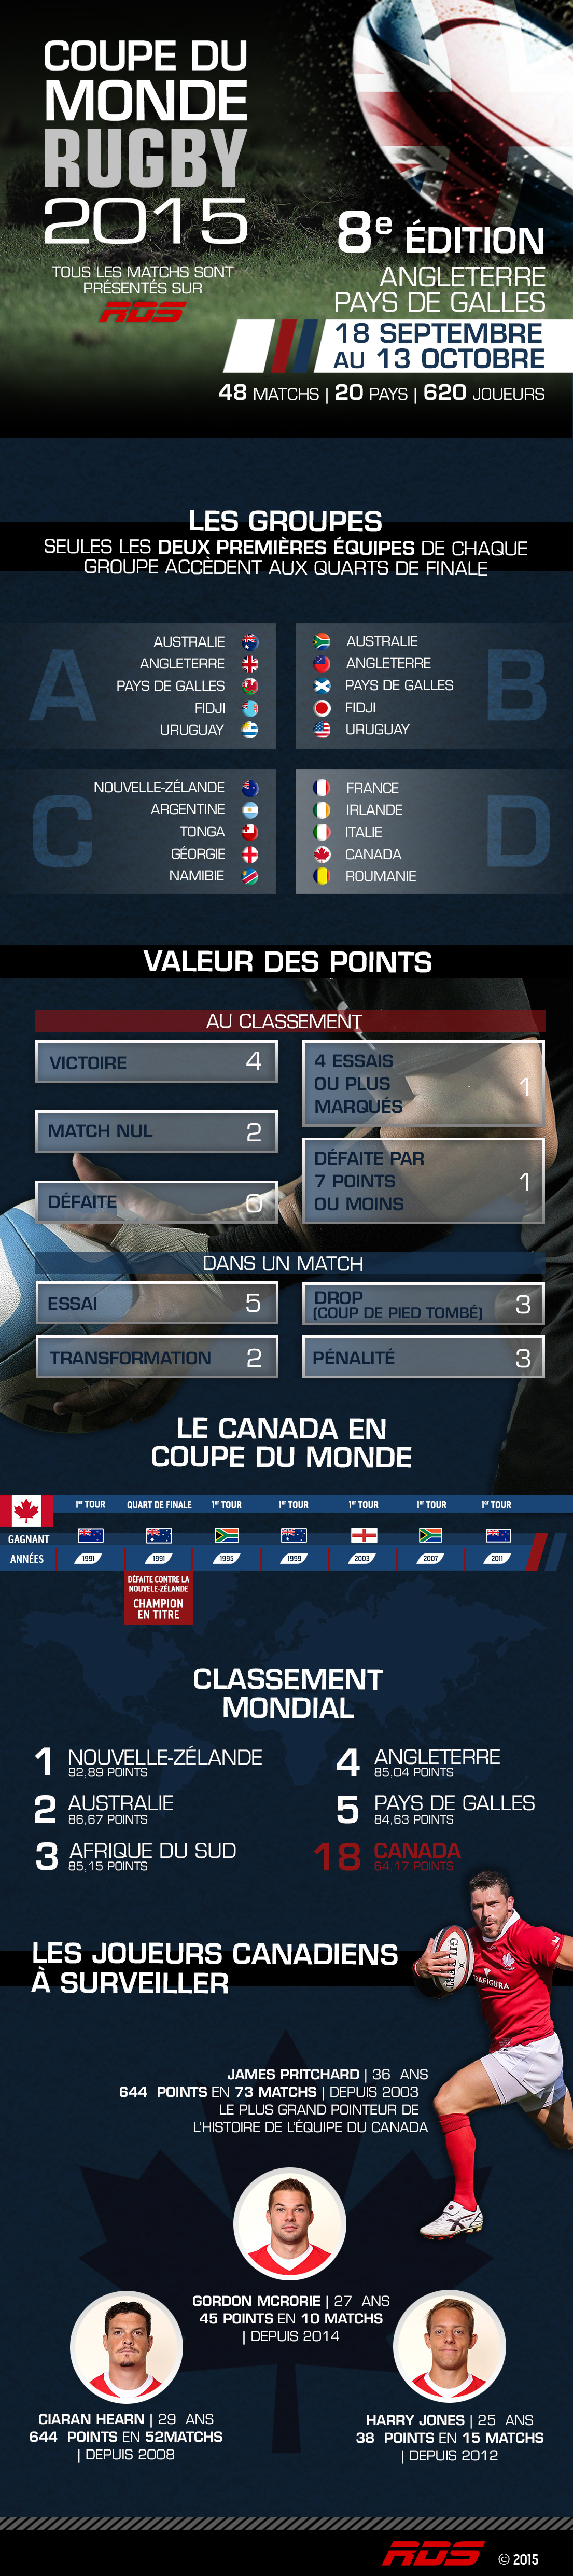 Infographie coupe du monde 2015 - Classement rugby coupe monde 2015 ...